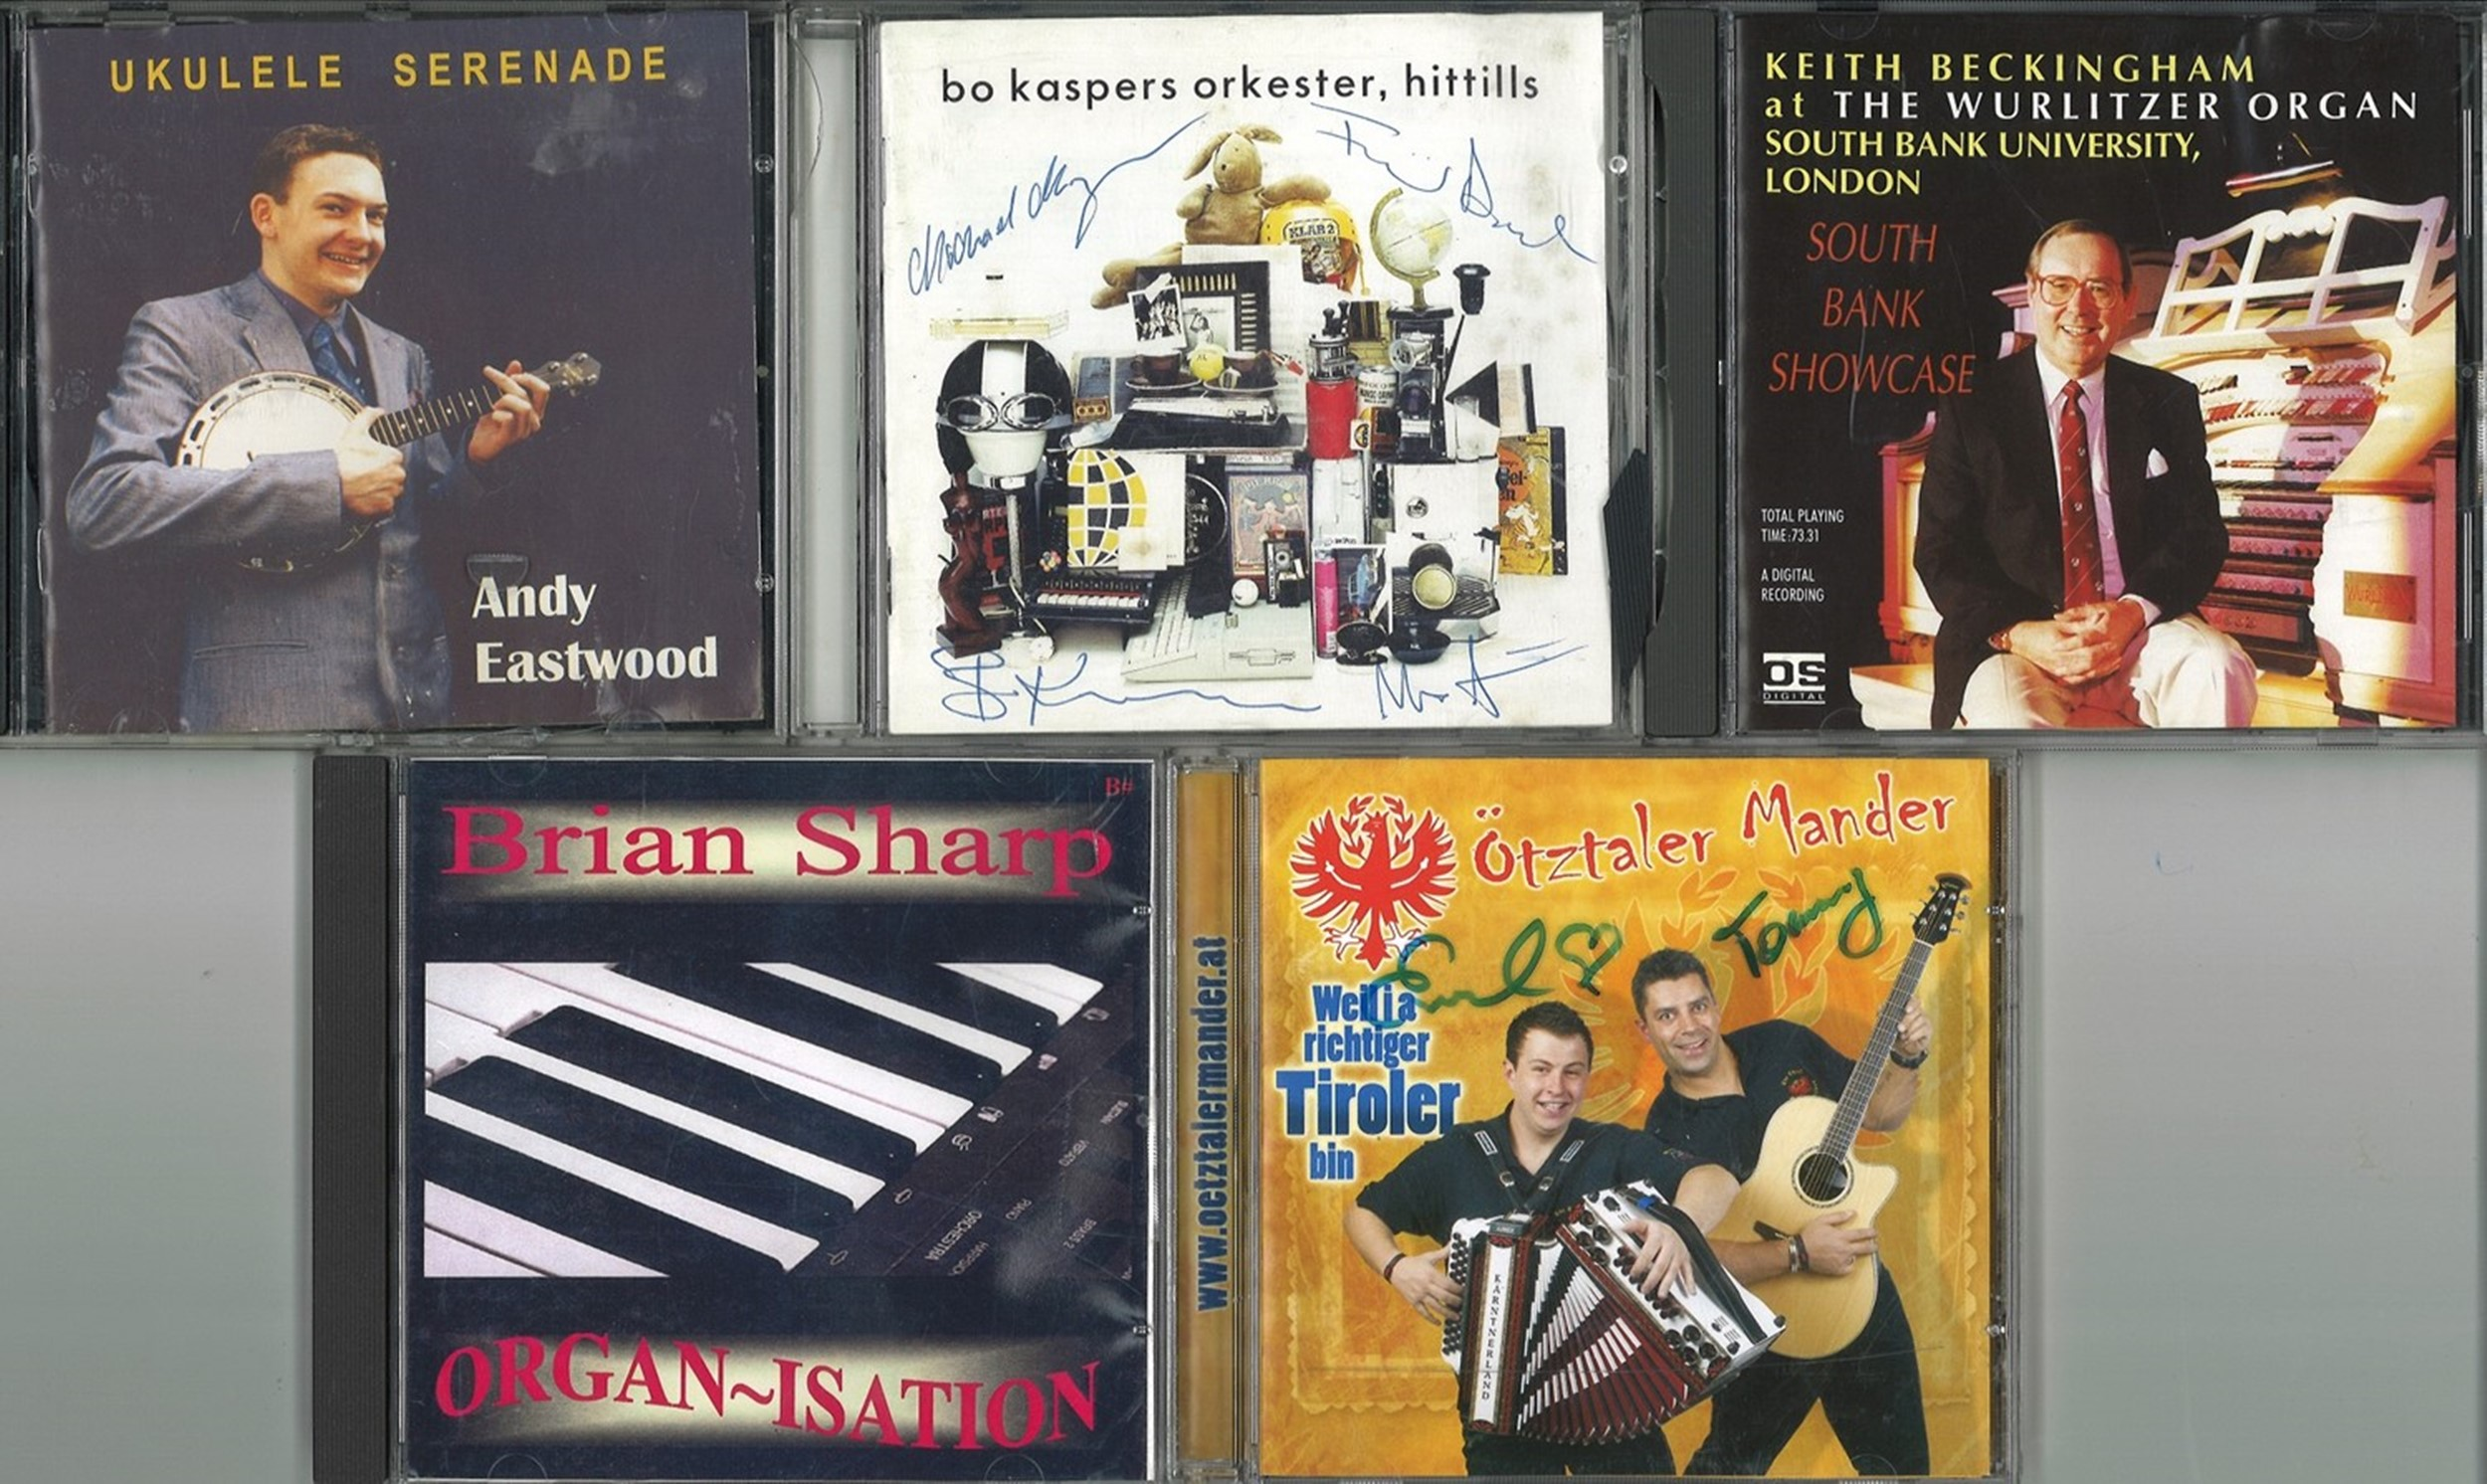 5 Signed CDs, A mixture of Organ and Orchestral Music, Including Keith Beckingham at the Wurlitzer